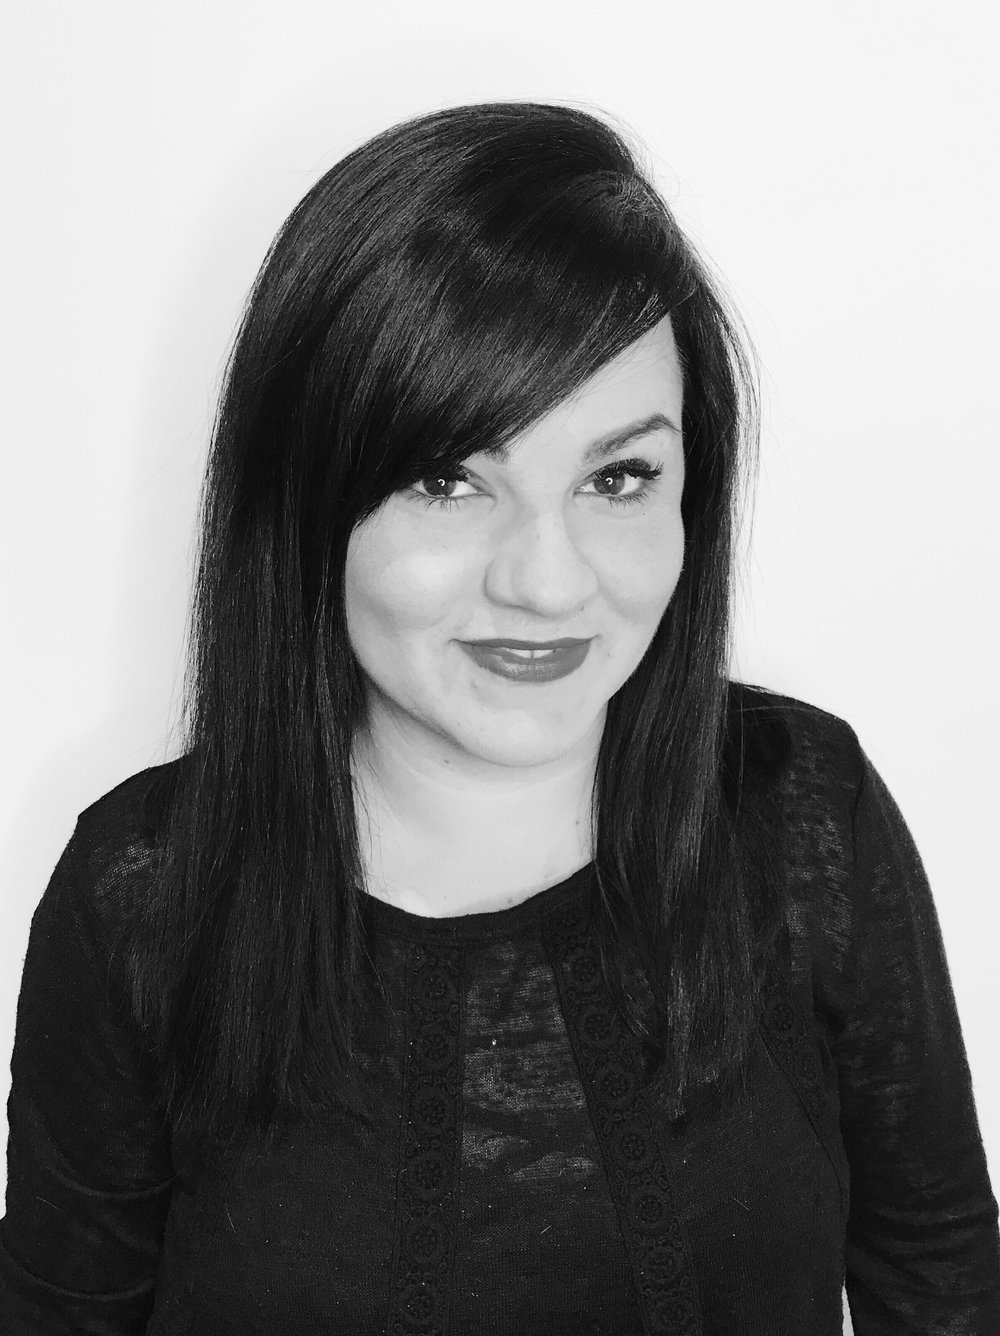 ANDI LAYHEWSTYLIST - Specializes in: precision cutting, creative cuts, balayage, creative color, event styling